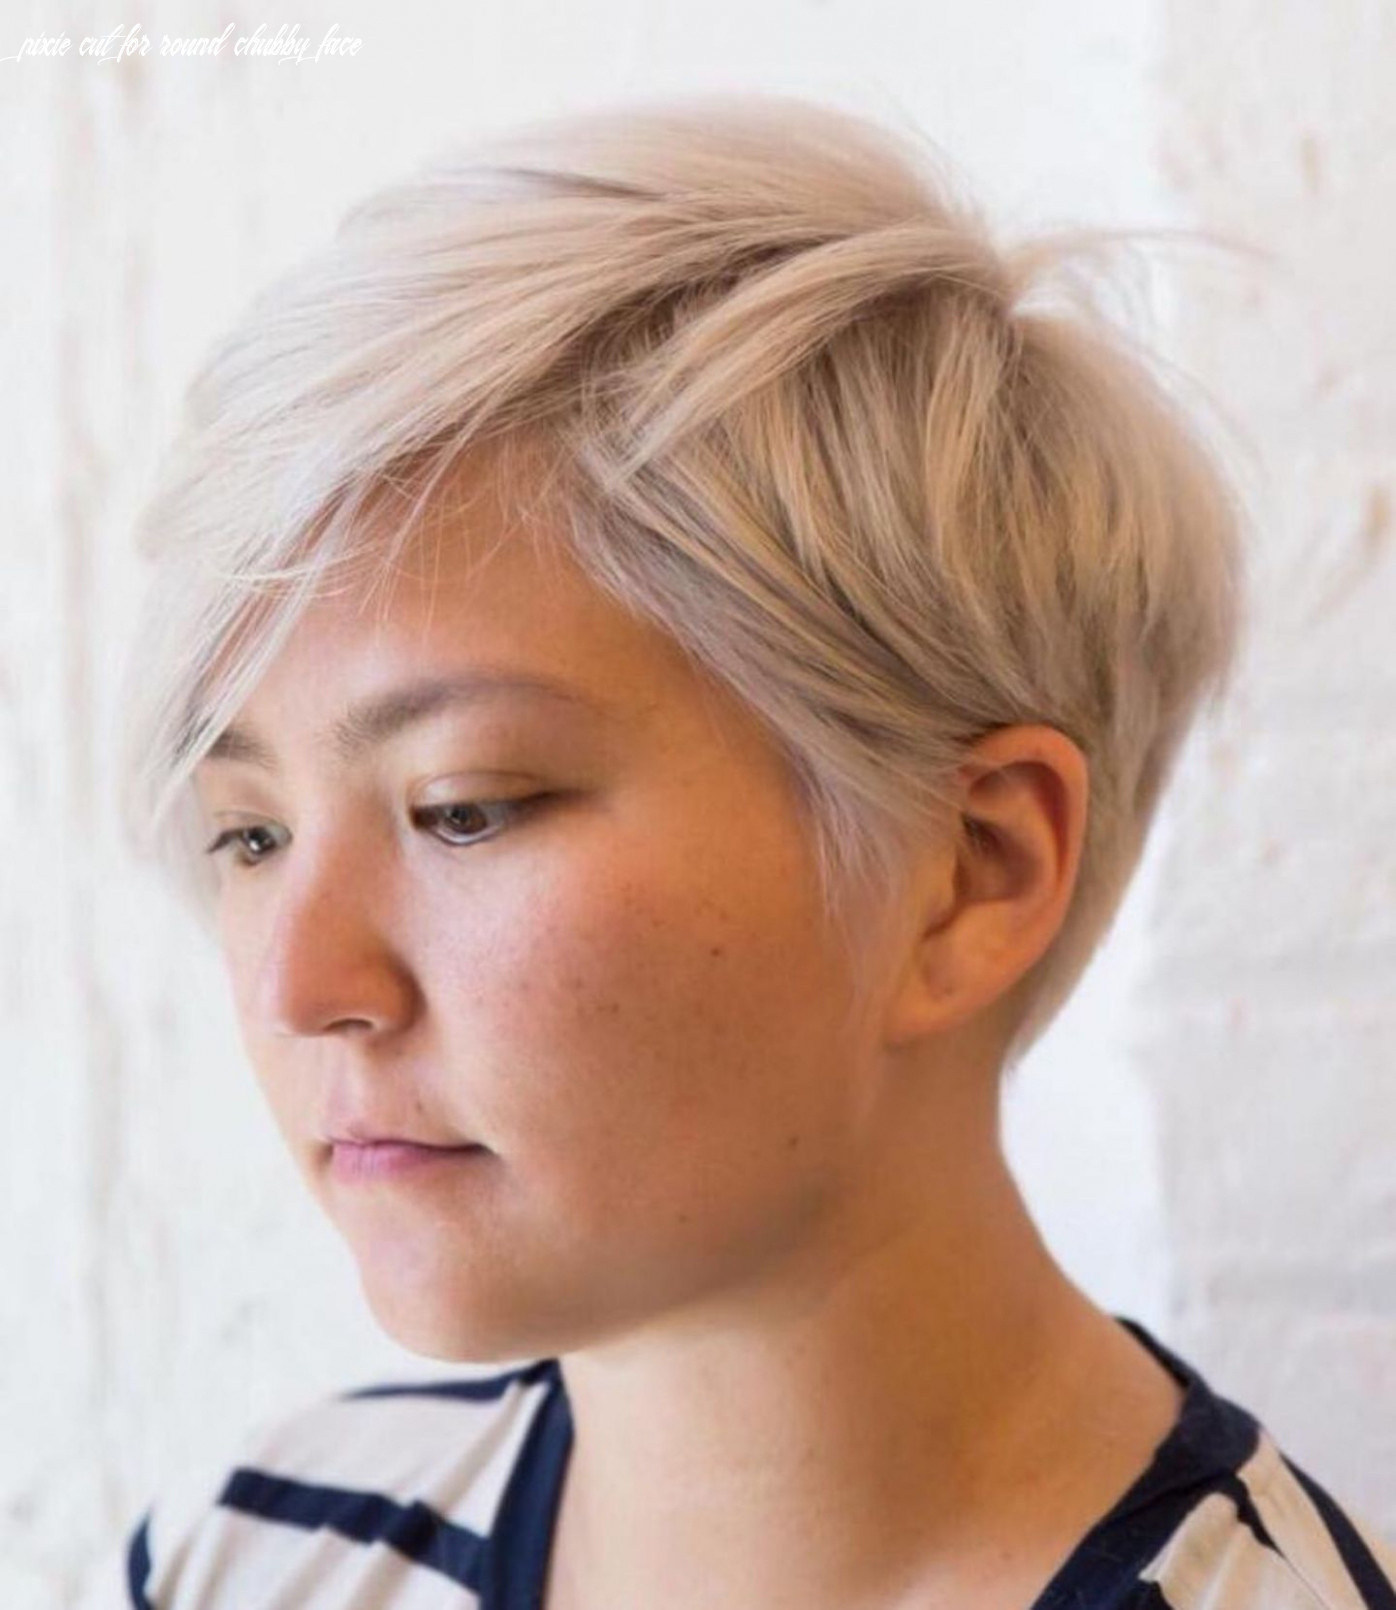 Pin on personal hair and care pixie cut for round chubby face